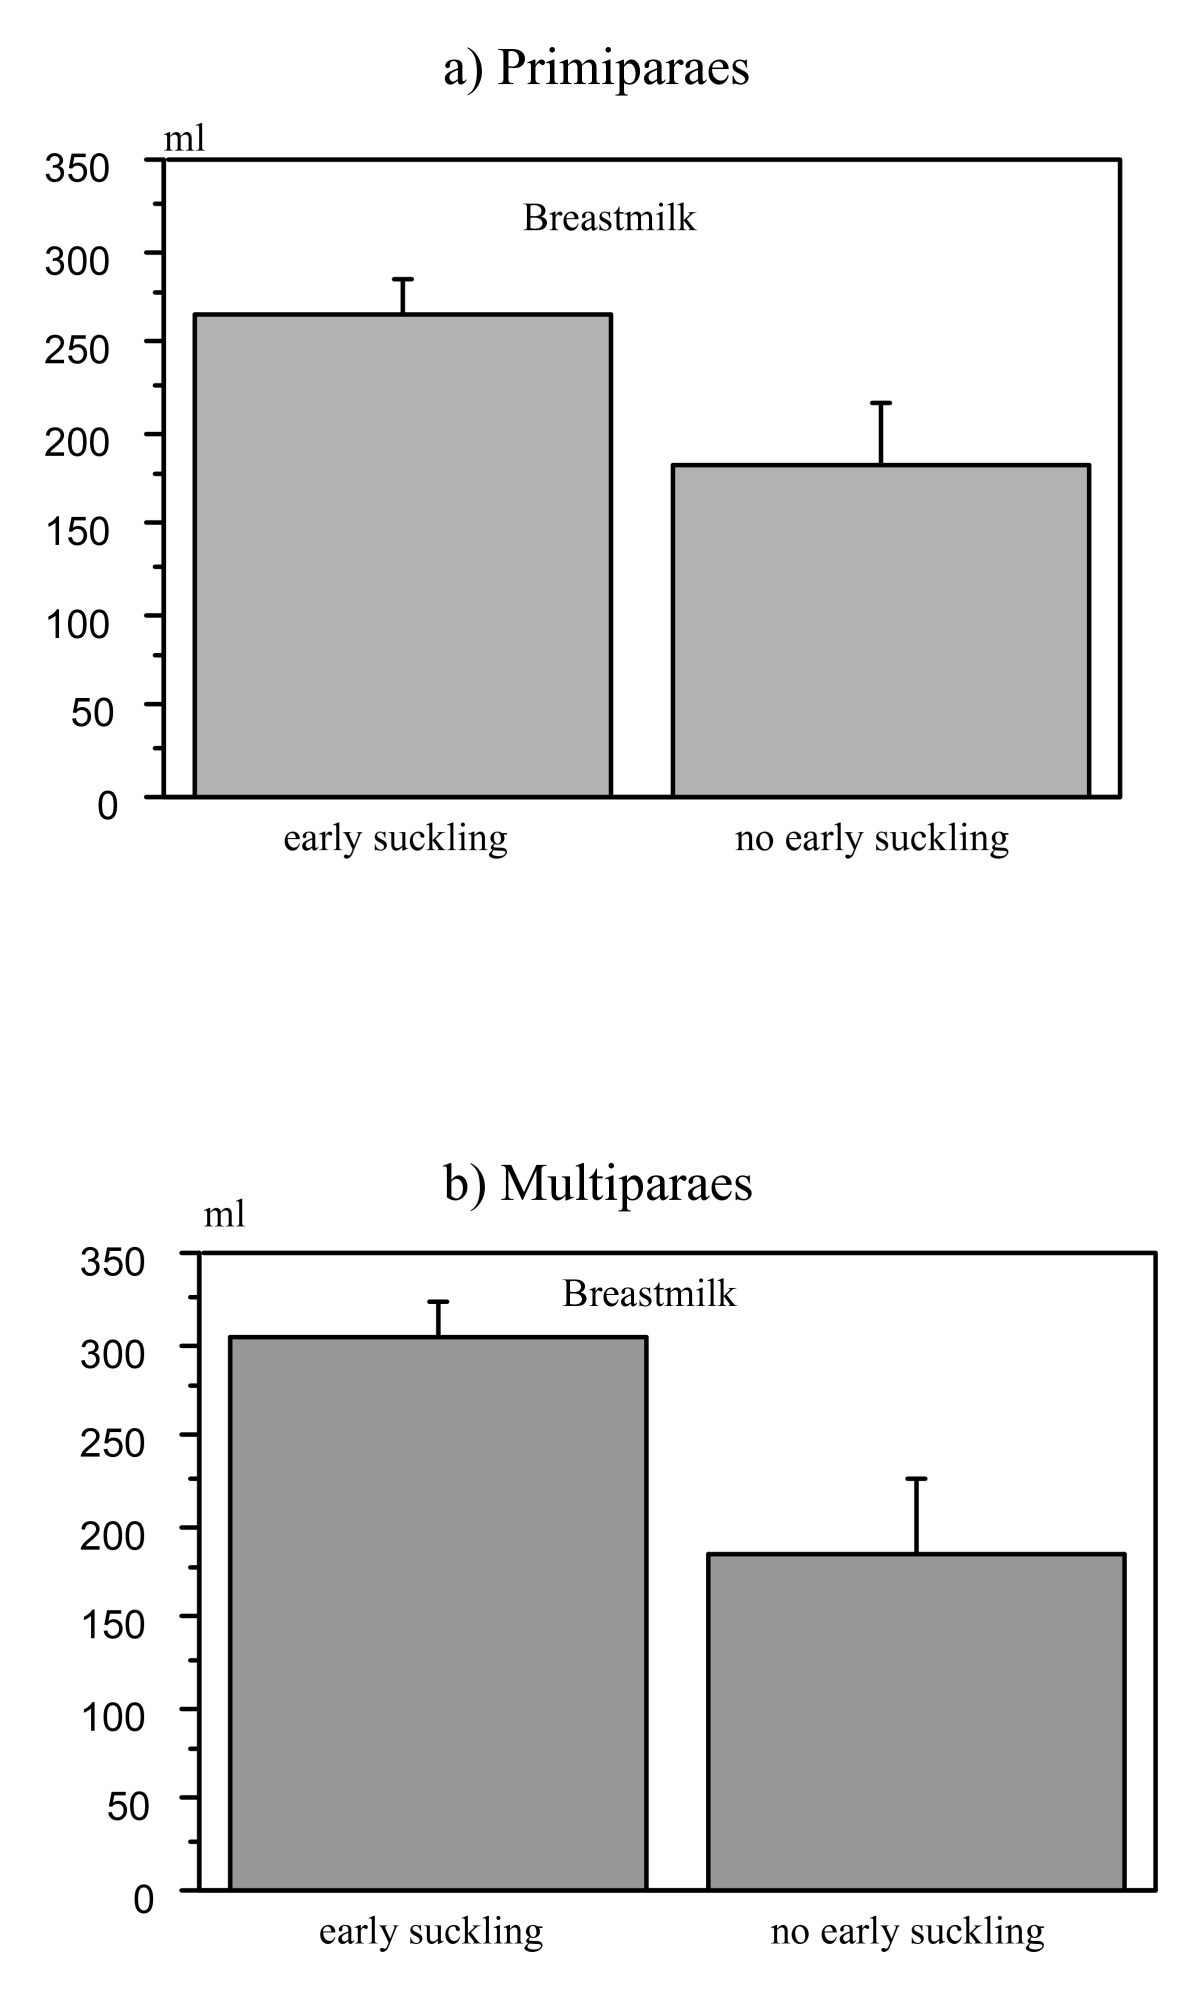 http://static-content.springer.com/image/art%3A10.1186%2F1746-4358-2-9/MediaObjects/13006_2005_Article_38_Fig8_HTML.jpg